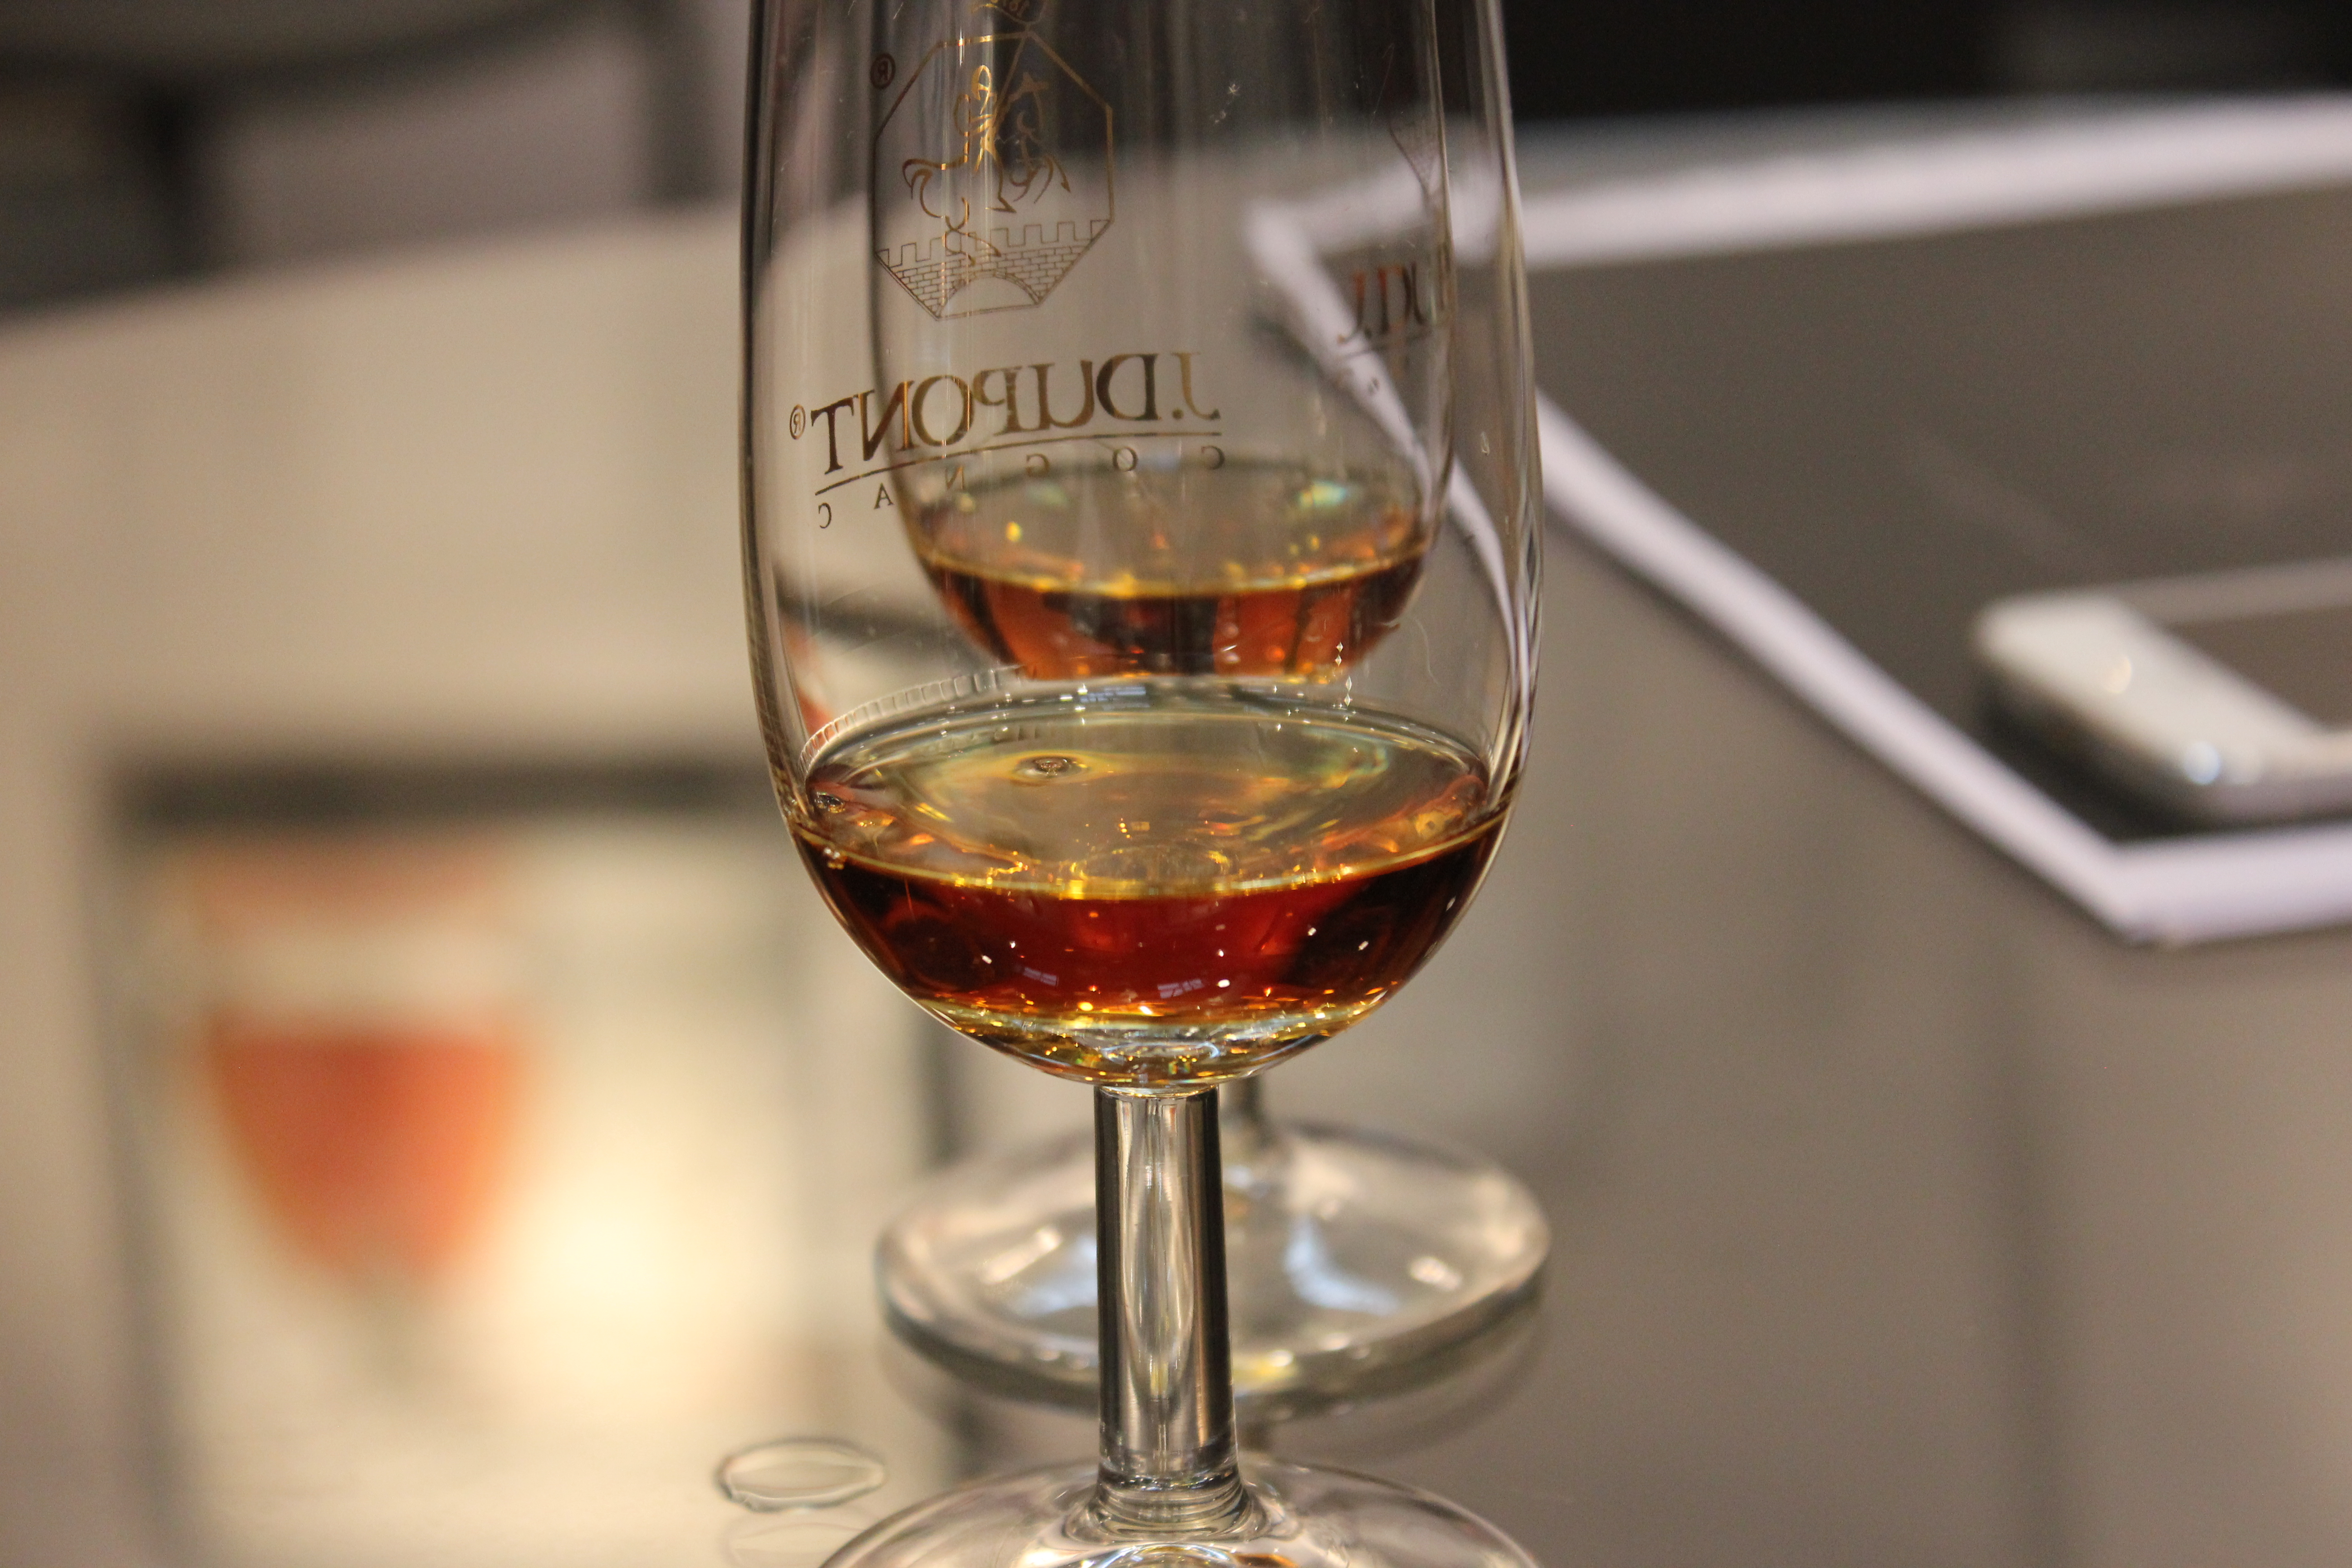 Tasting one of the new Dupont cognacs